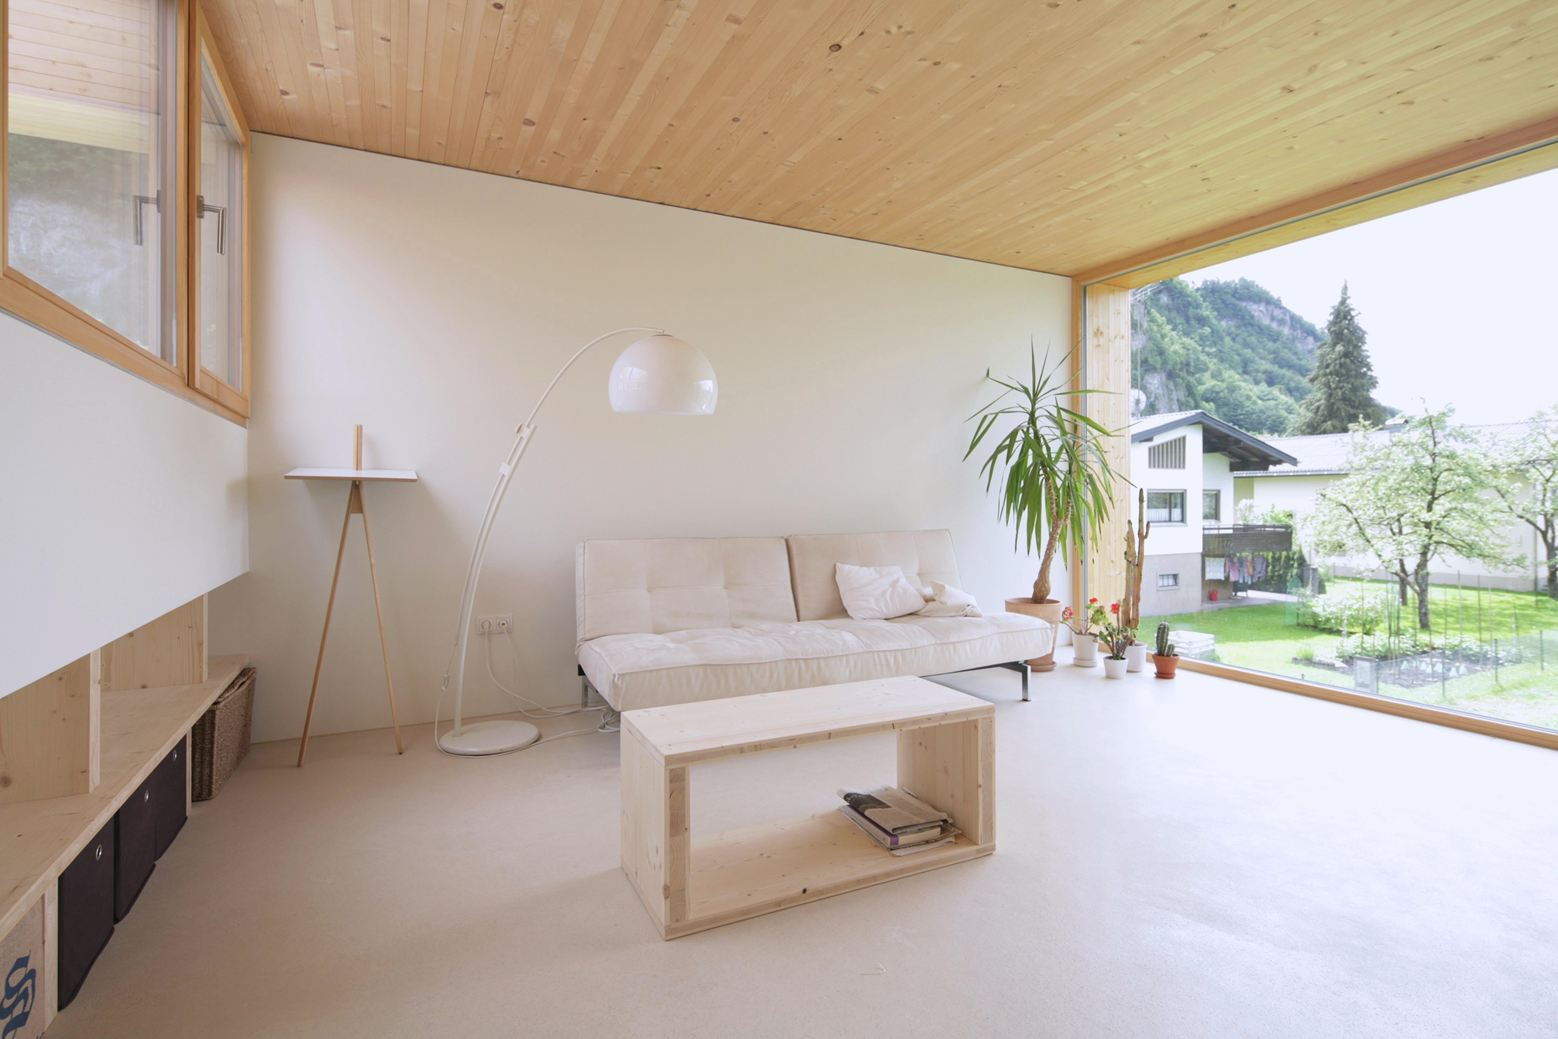 37m House in Hohenems, Austria by Juri Troy Architects